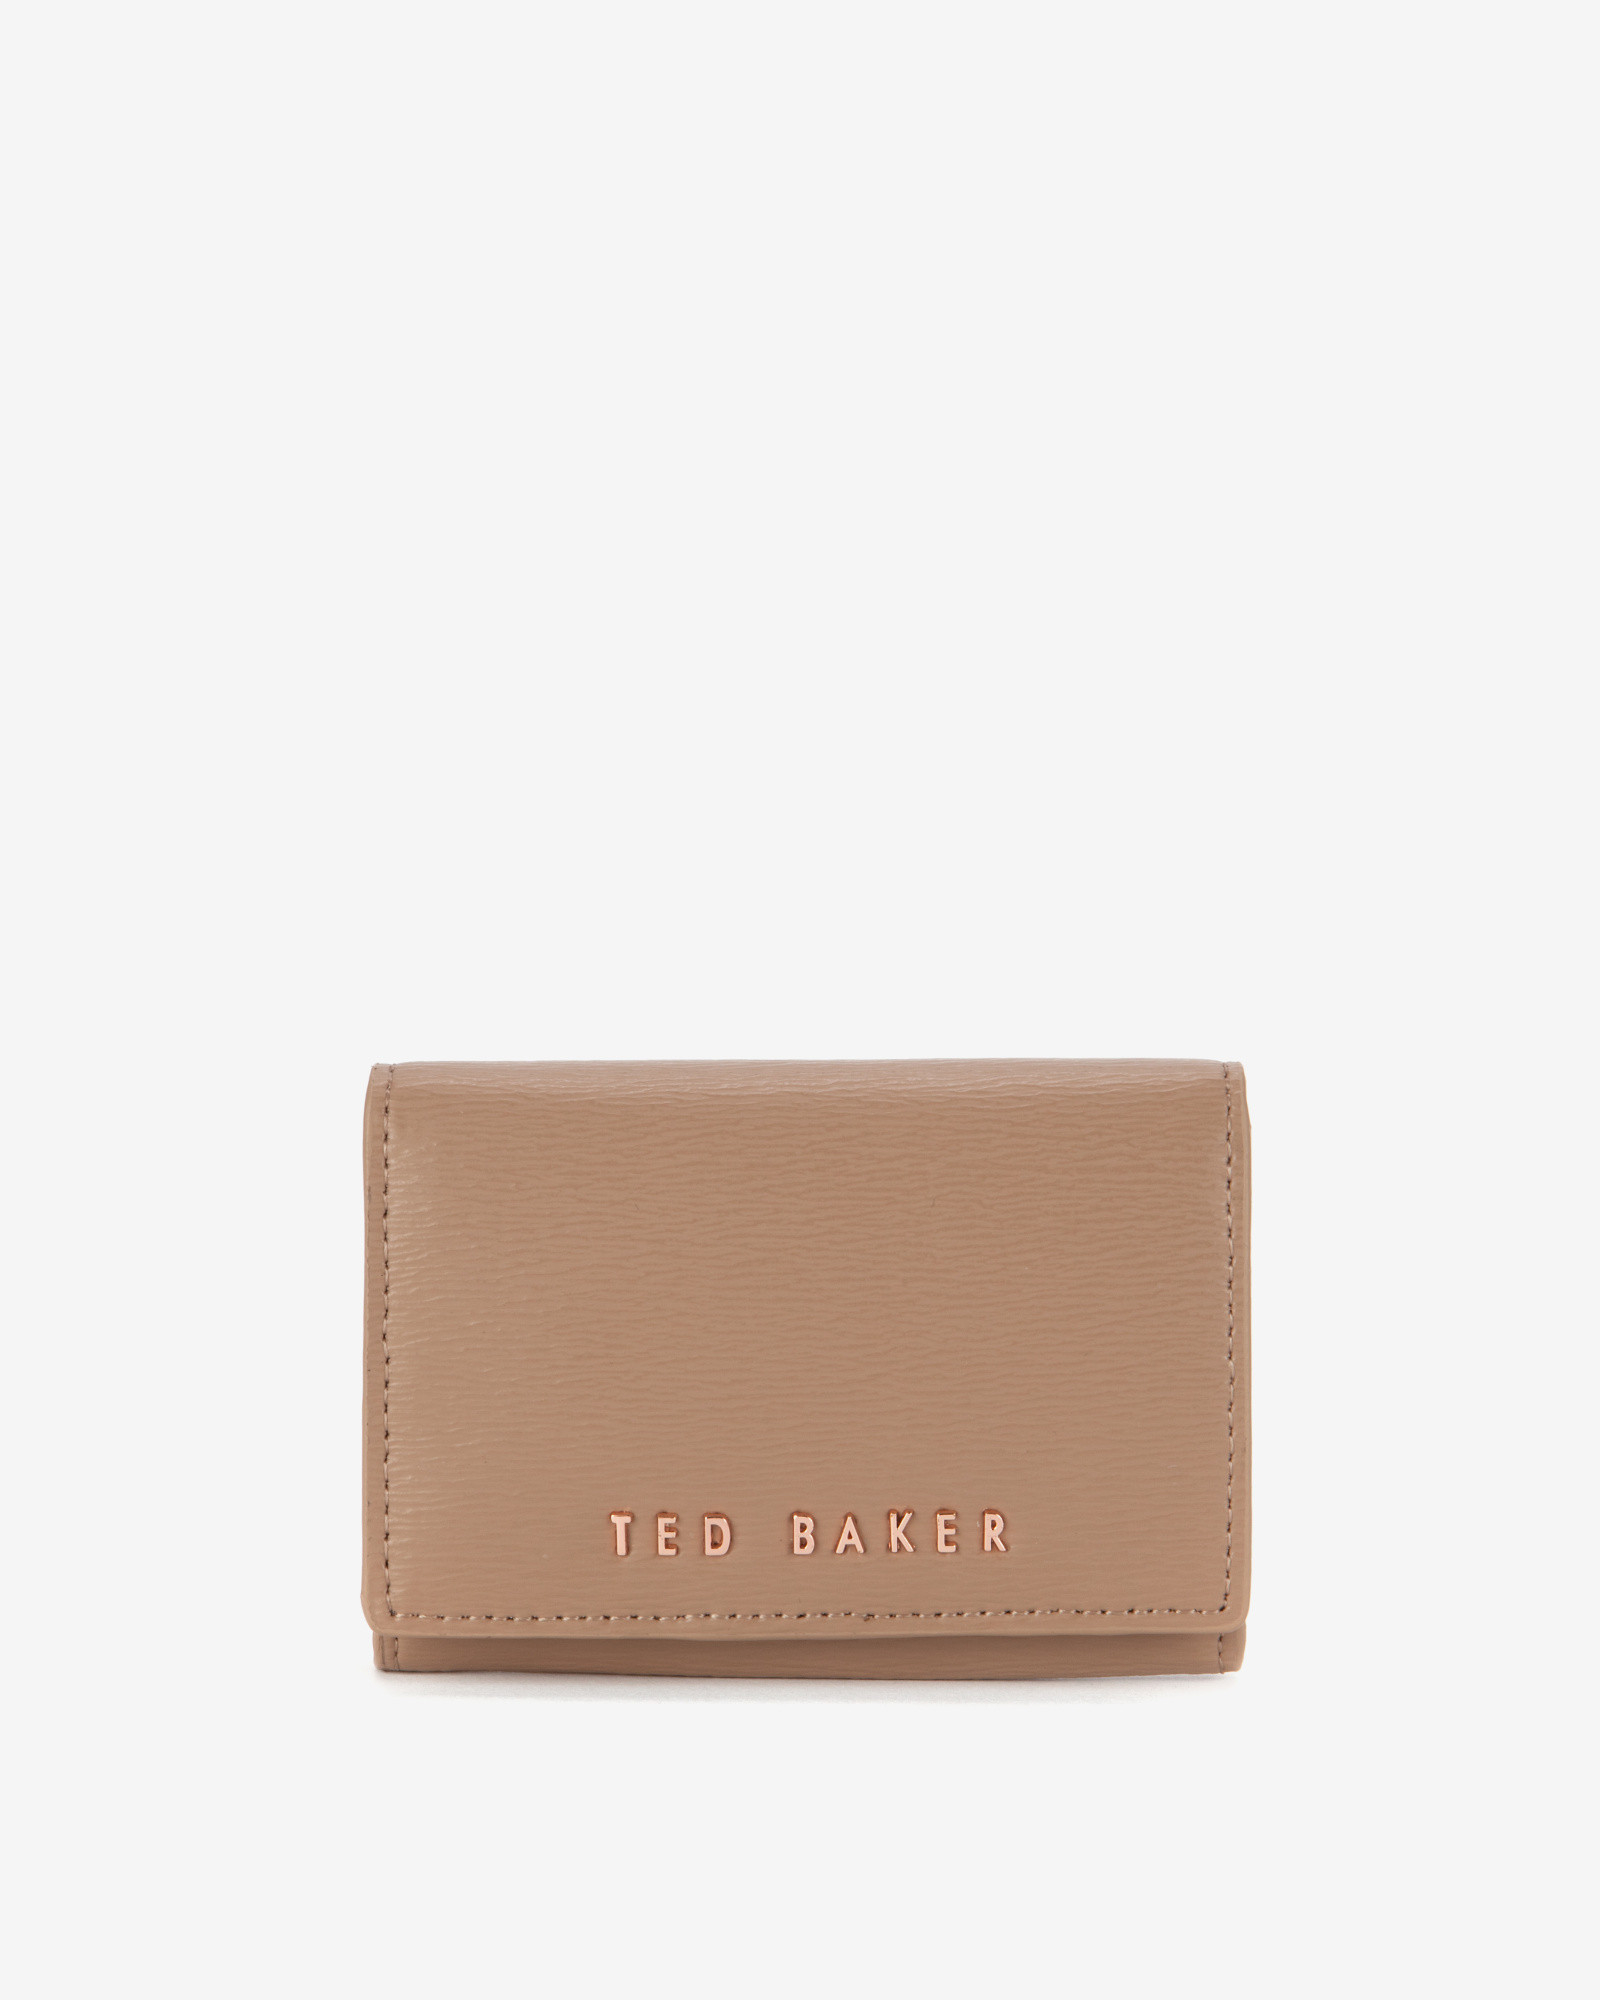 6cee47cbe3c9 Ted Baker Small Wallet - Best Photo Wallet Justiceforkenny.Org